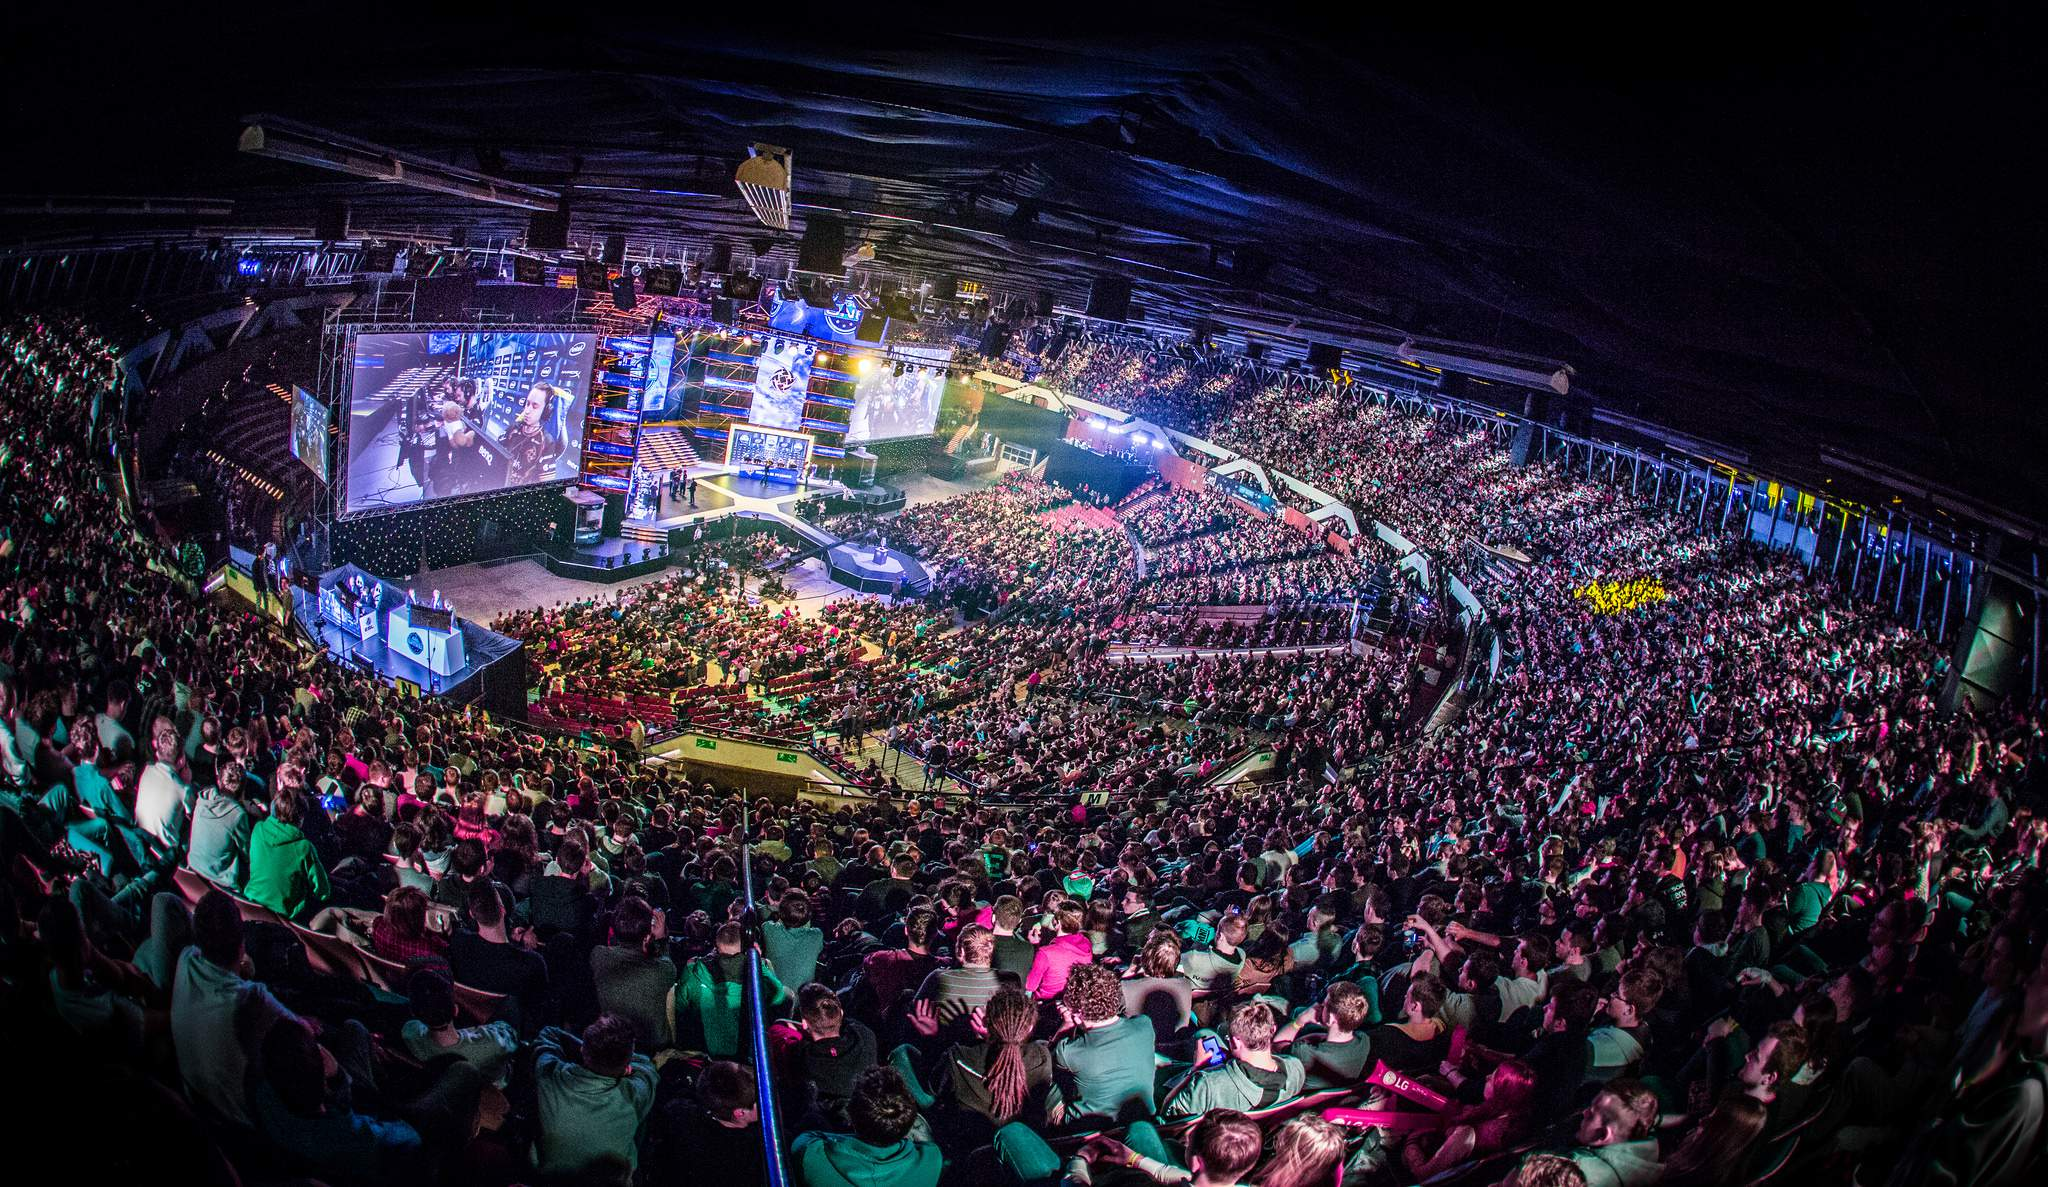 Call of Duty Esports is Bigger Than Ever